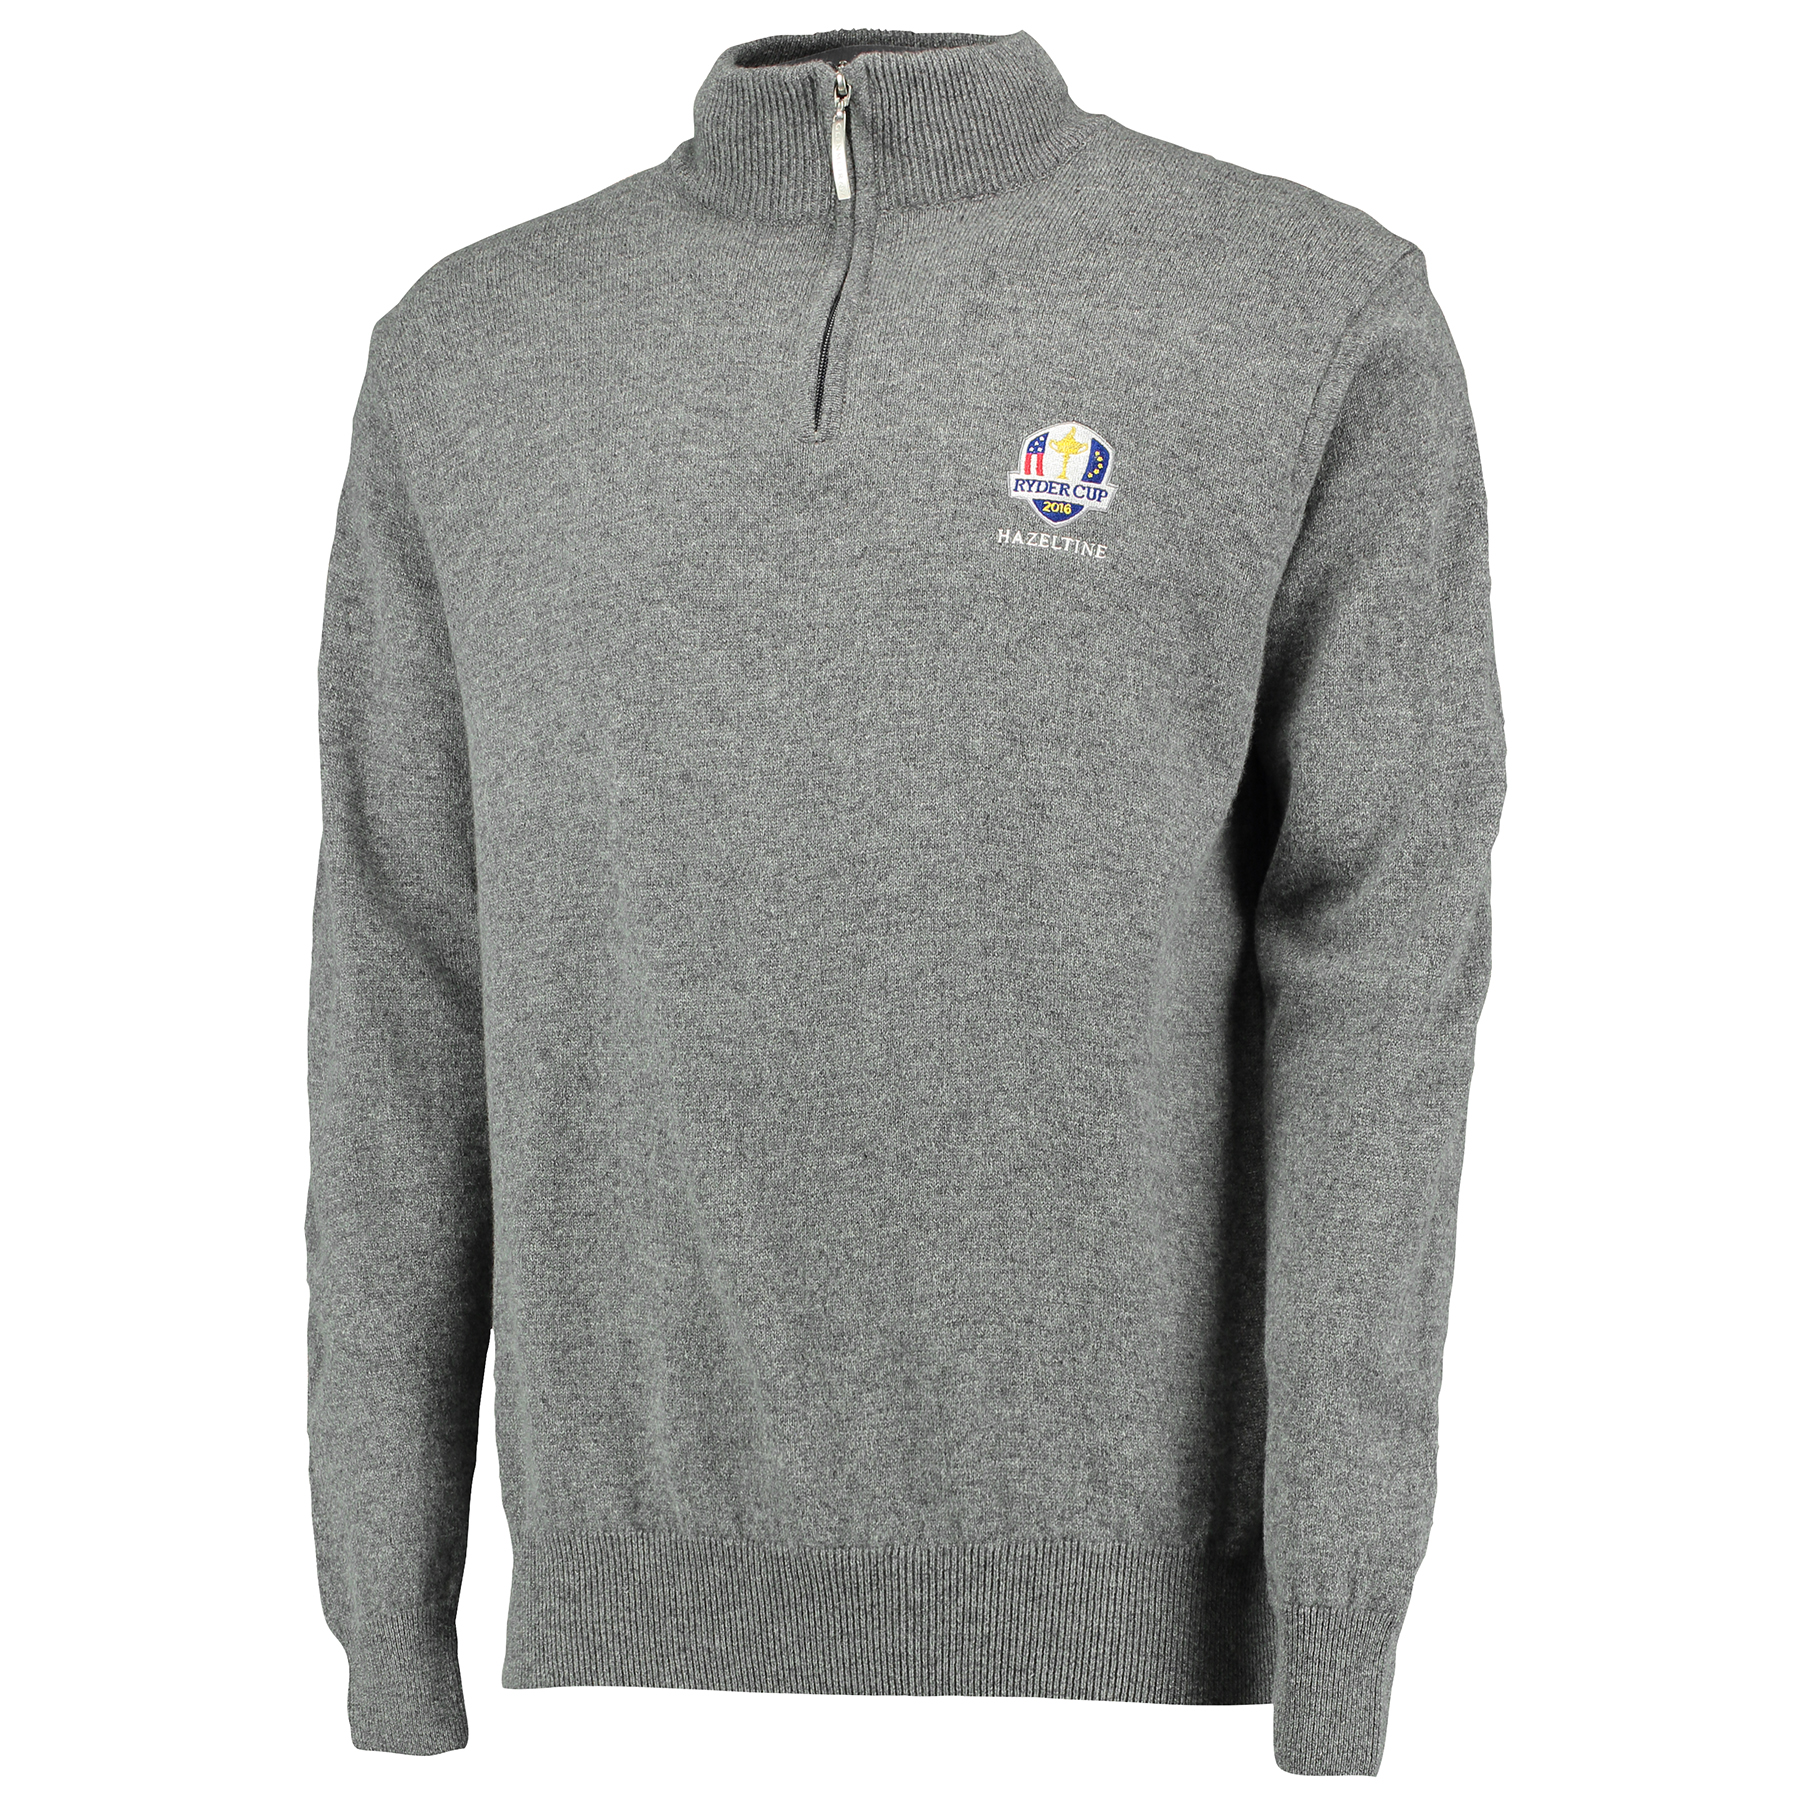 The 2016 Ryder Cup Glenmuir Coll Zip Neck Lambswool Sweater - Grey Mix